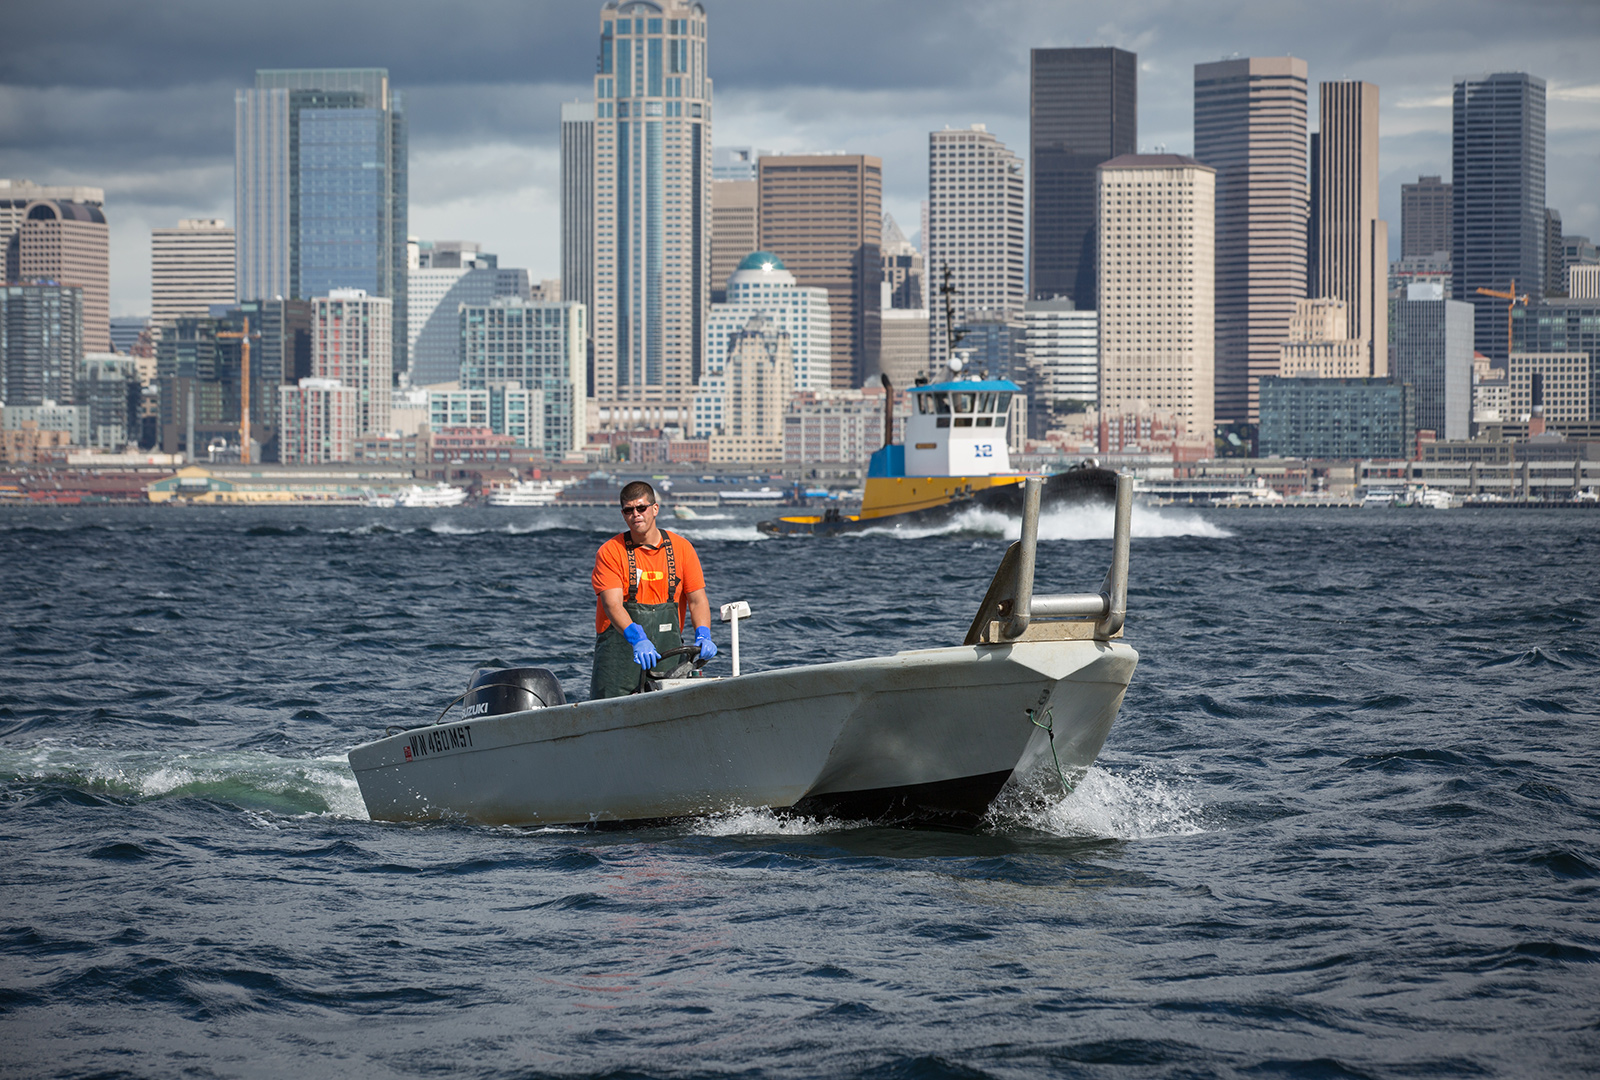 A small fishing boat with Muckleshoot Indian Tribe members travels across Elliot Bay, with the Seattle skyline in the background.